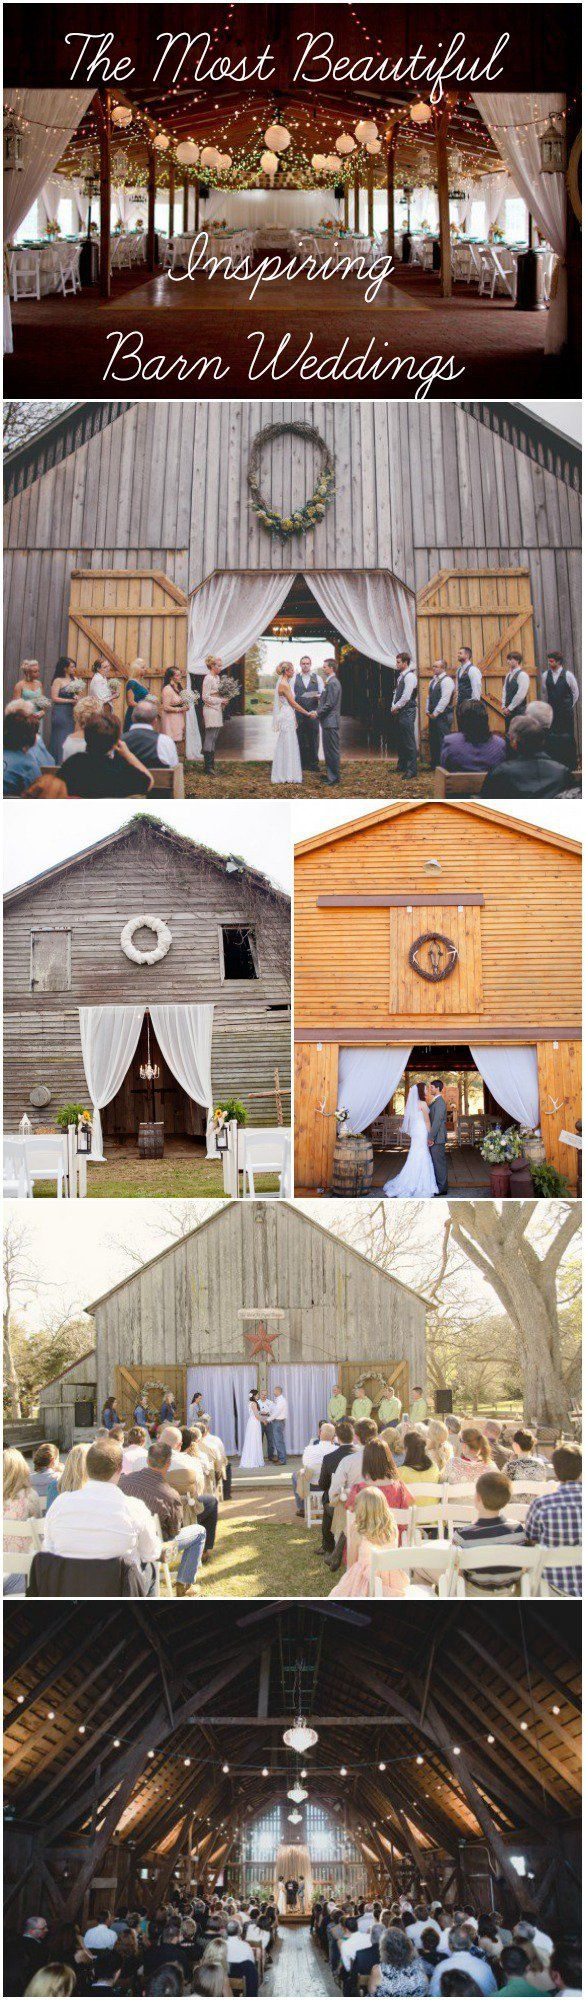 The Most Beautiful & Inspiring Barn Weddings